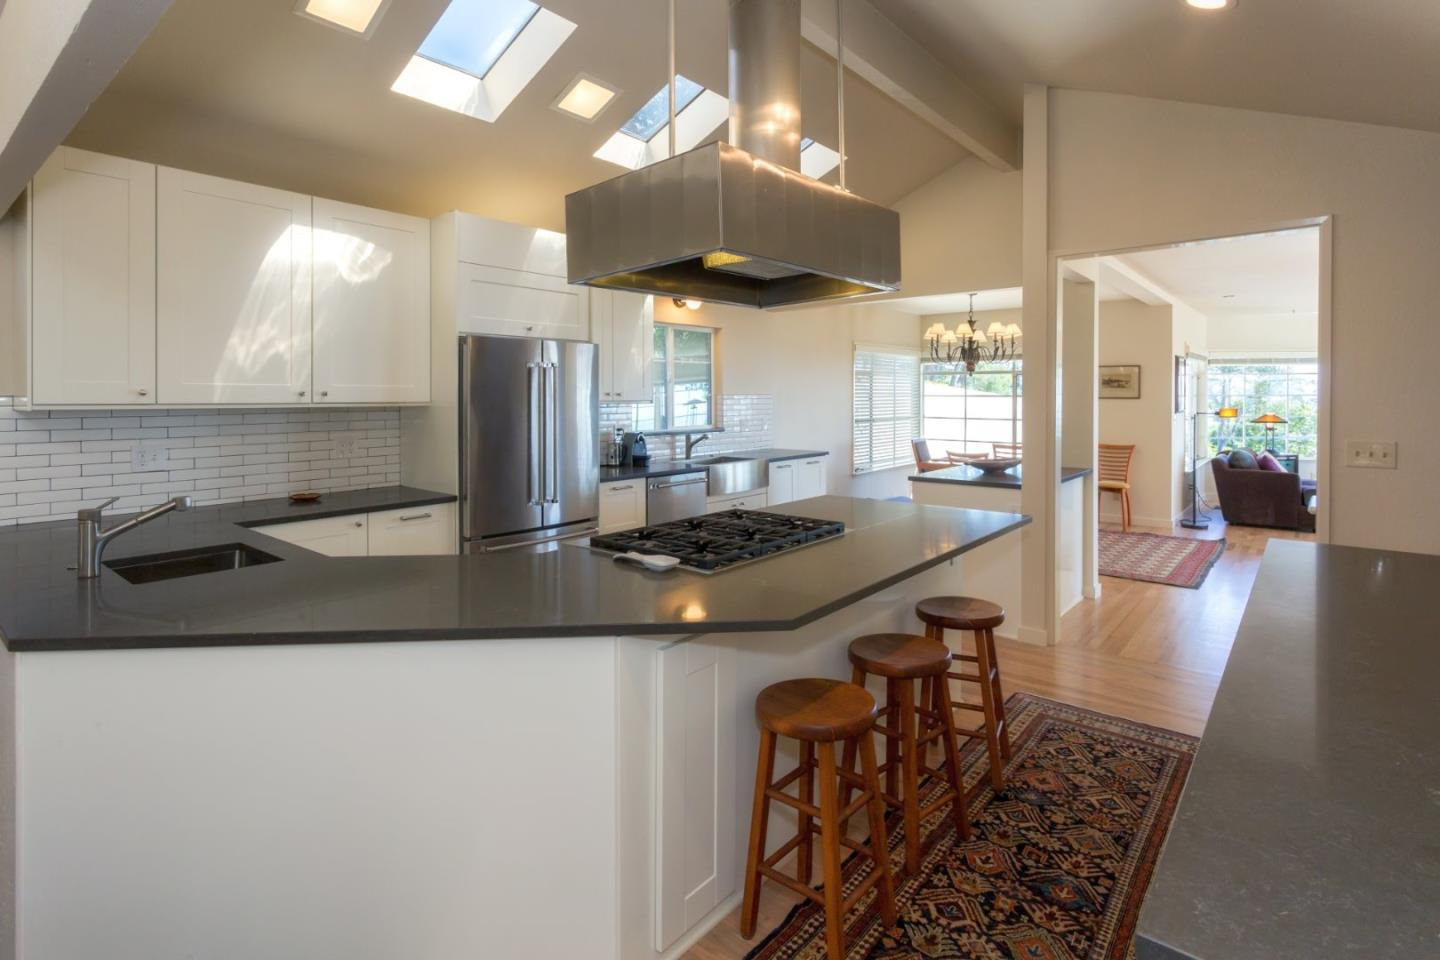 Additional photo for property listing at 605 Vista Del Mar  Aptos, カリフォルニア 95003 アメリカ合衆国